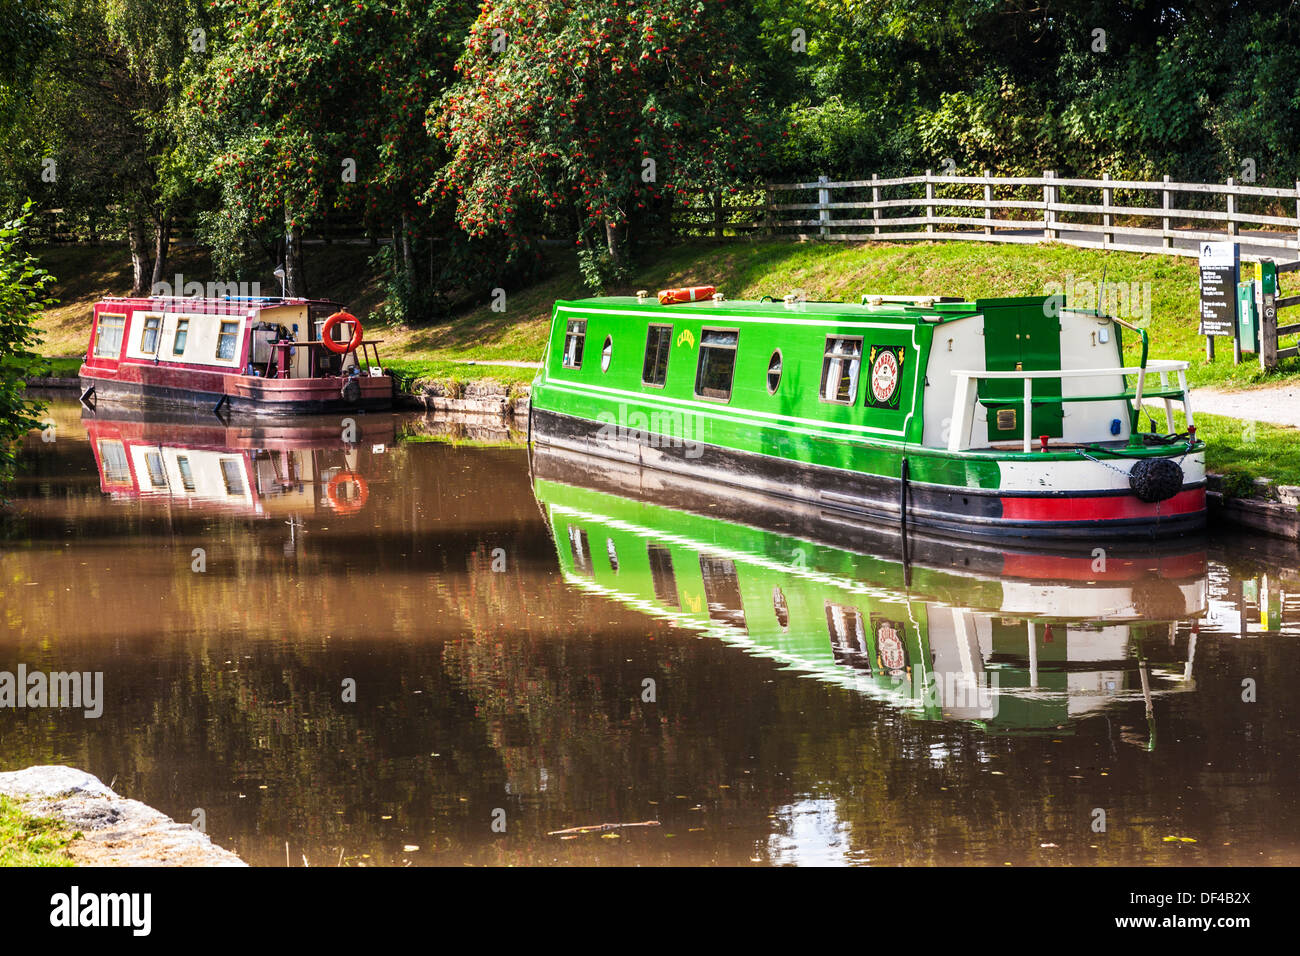 Narrowboats moored along the Monmouthshire and Brecon Canal at Llangynidr lock in the Brecon Beacons National Park. - Stock Image